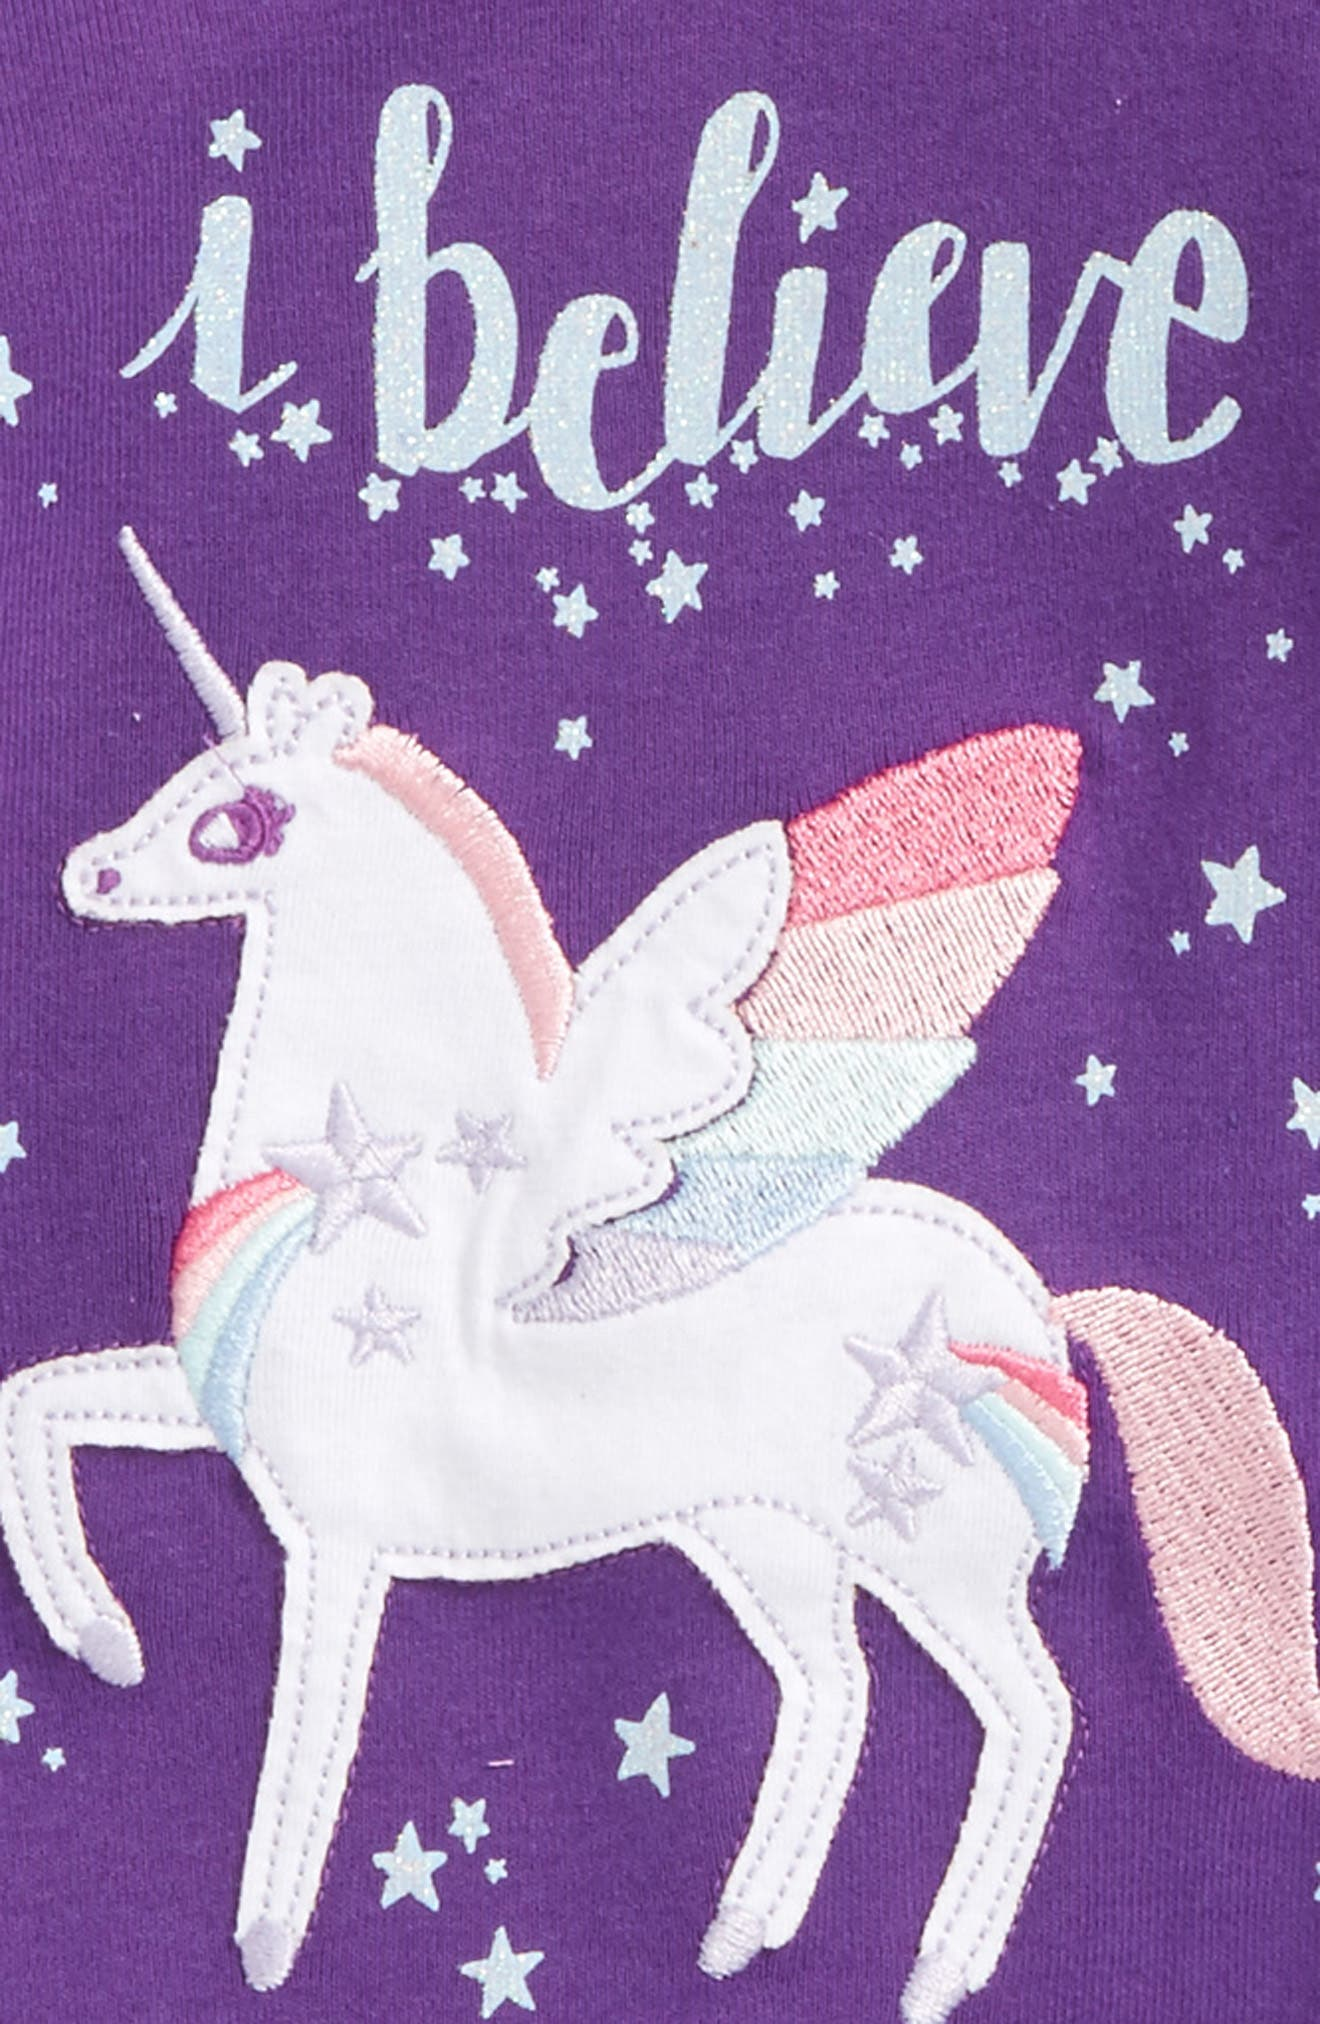 Appliqué Two-Piece Fitted Pajamas,                             Alternate thumbnail 2, color,                             Winged Unicorns